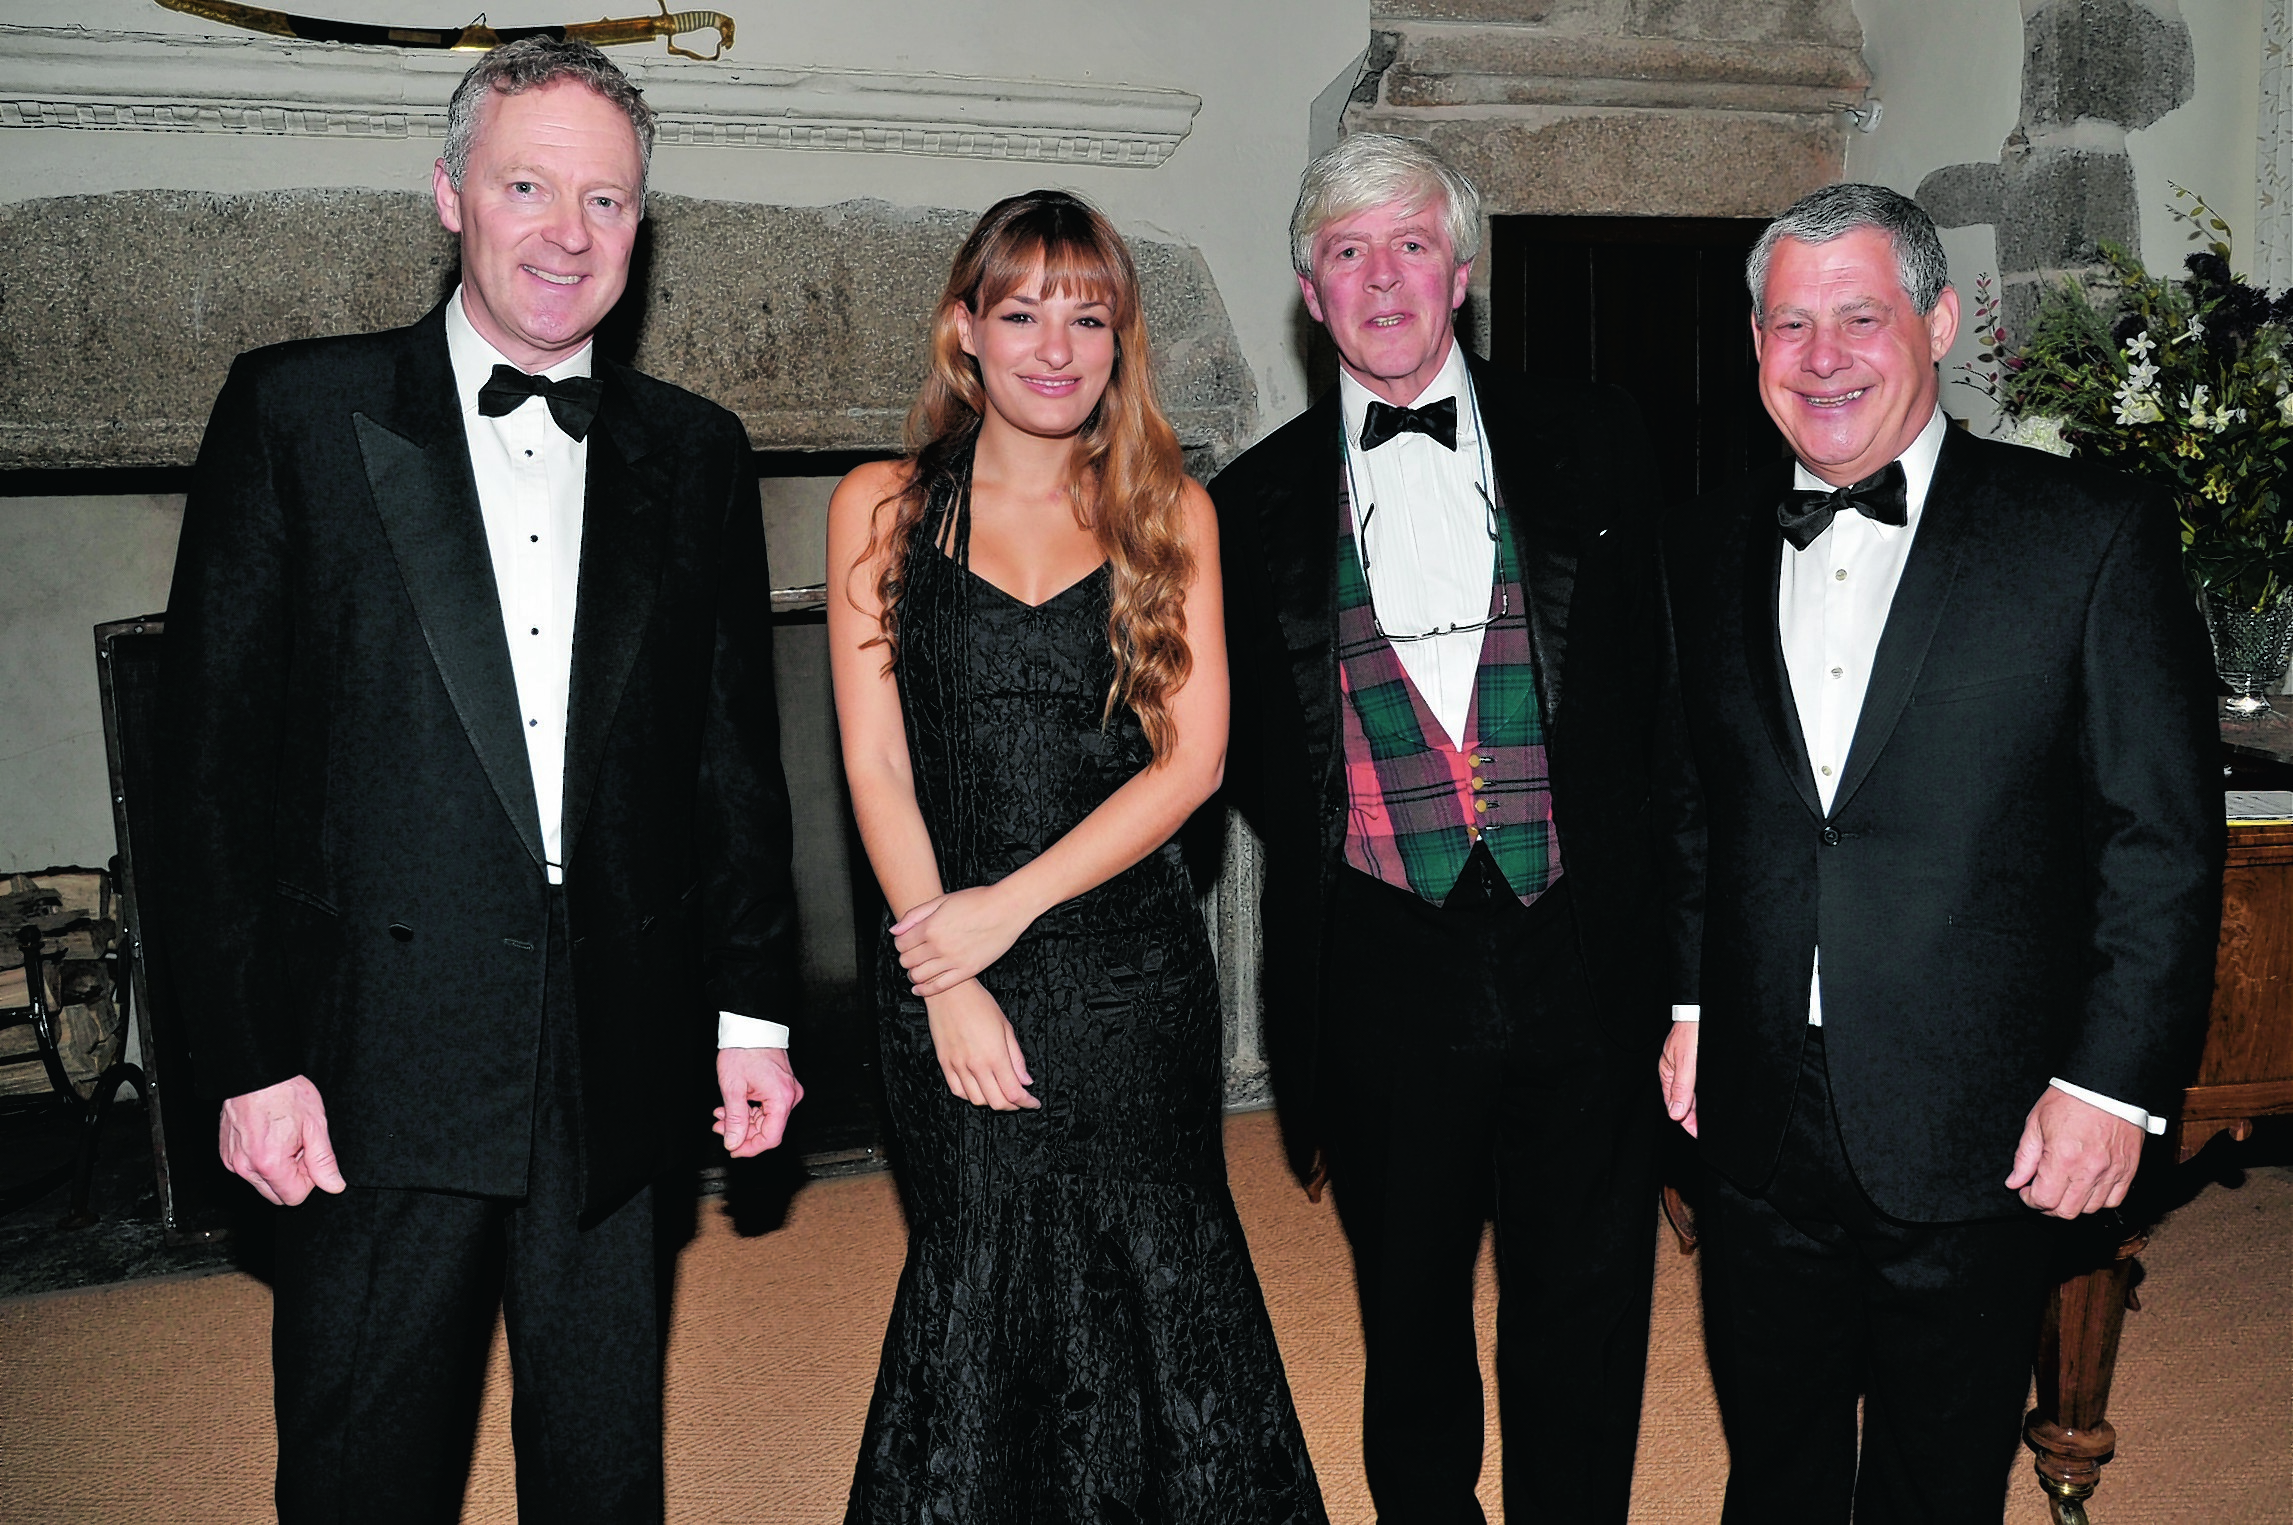 L - R - Rory Bremner, Nicola Benedetti, Lord Lindsay and Sir Cameron Mackintosh